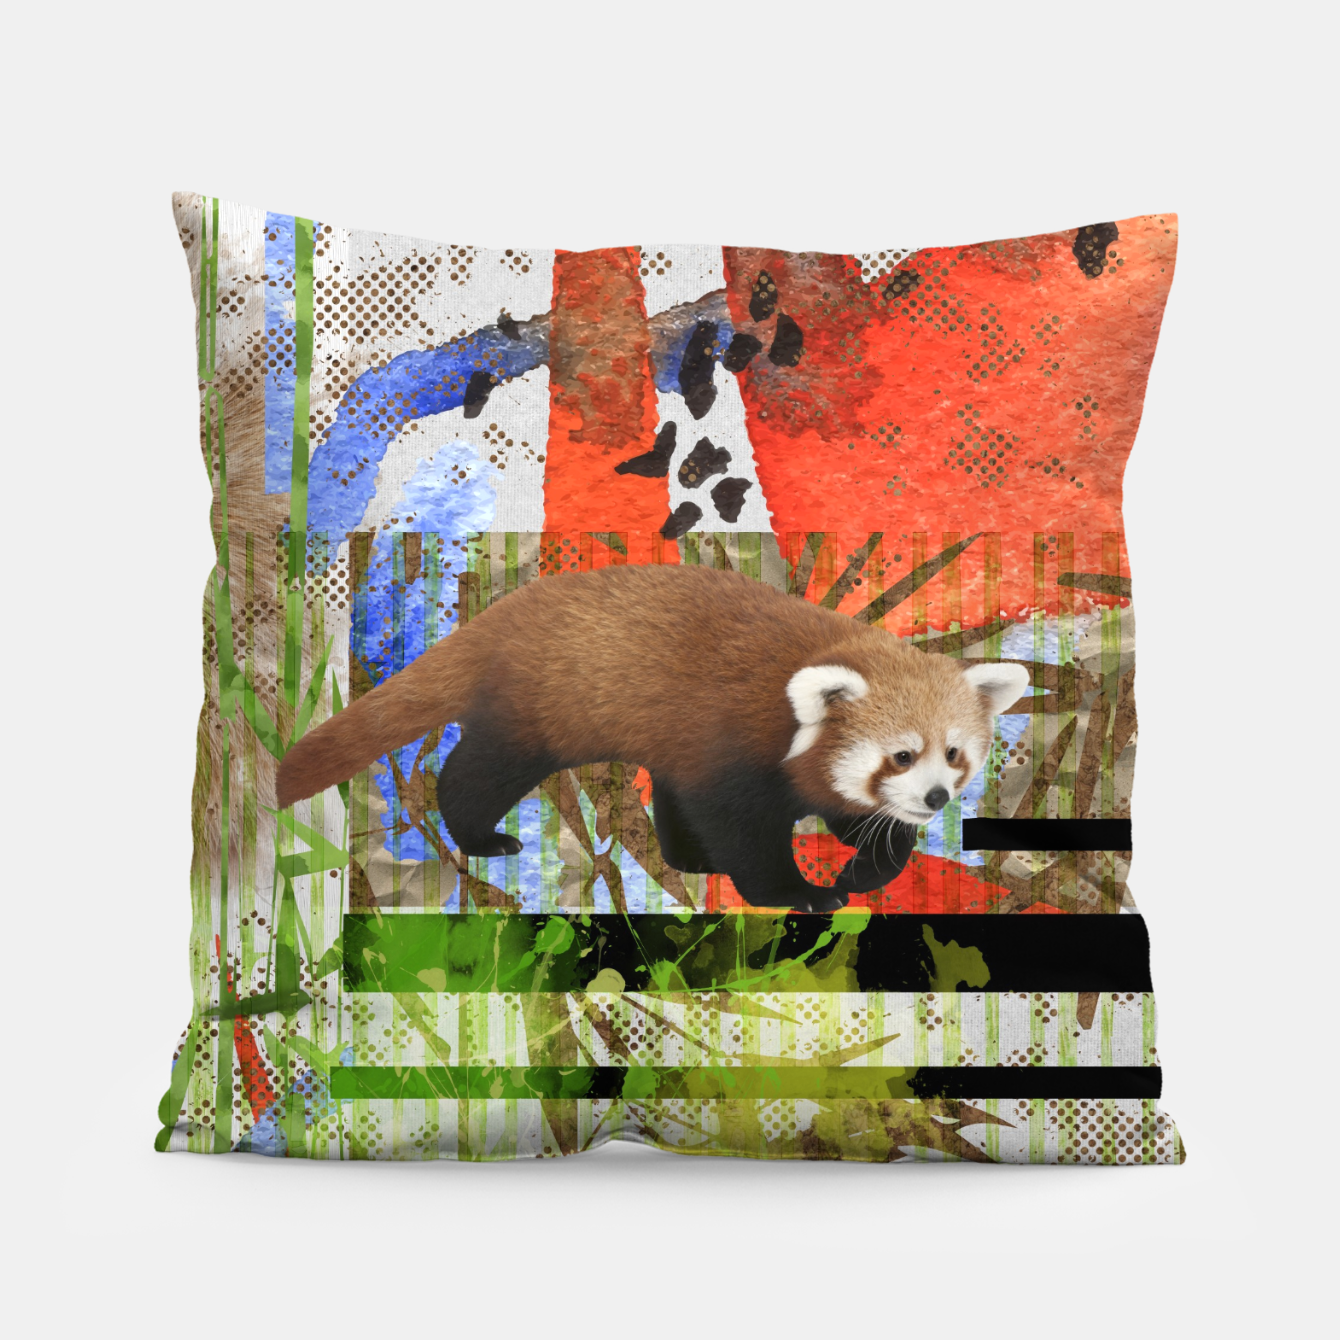 Red Panda Abstract Mixed Media Art Collage Pillow Live Heroes